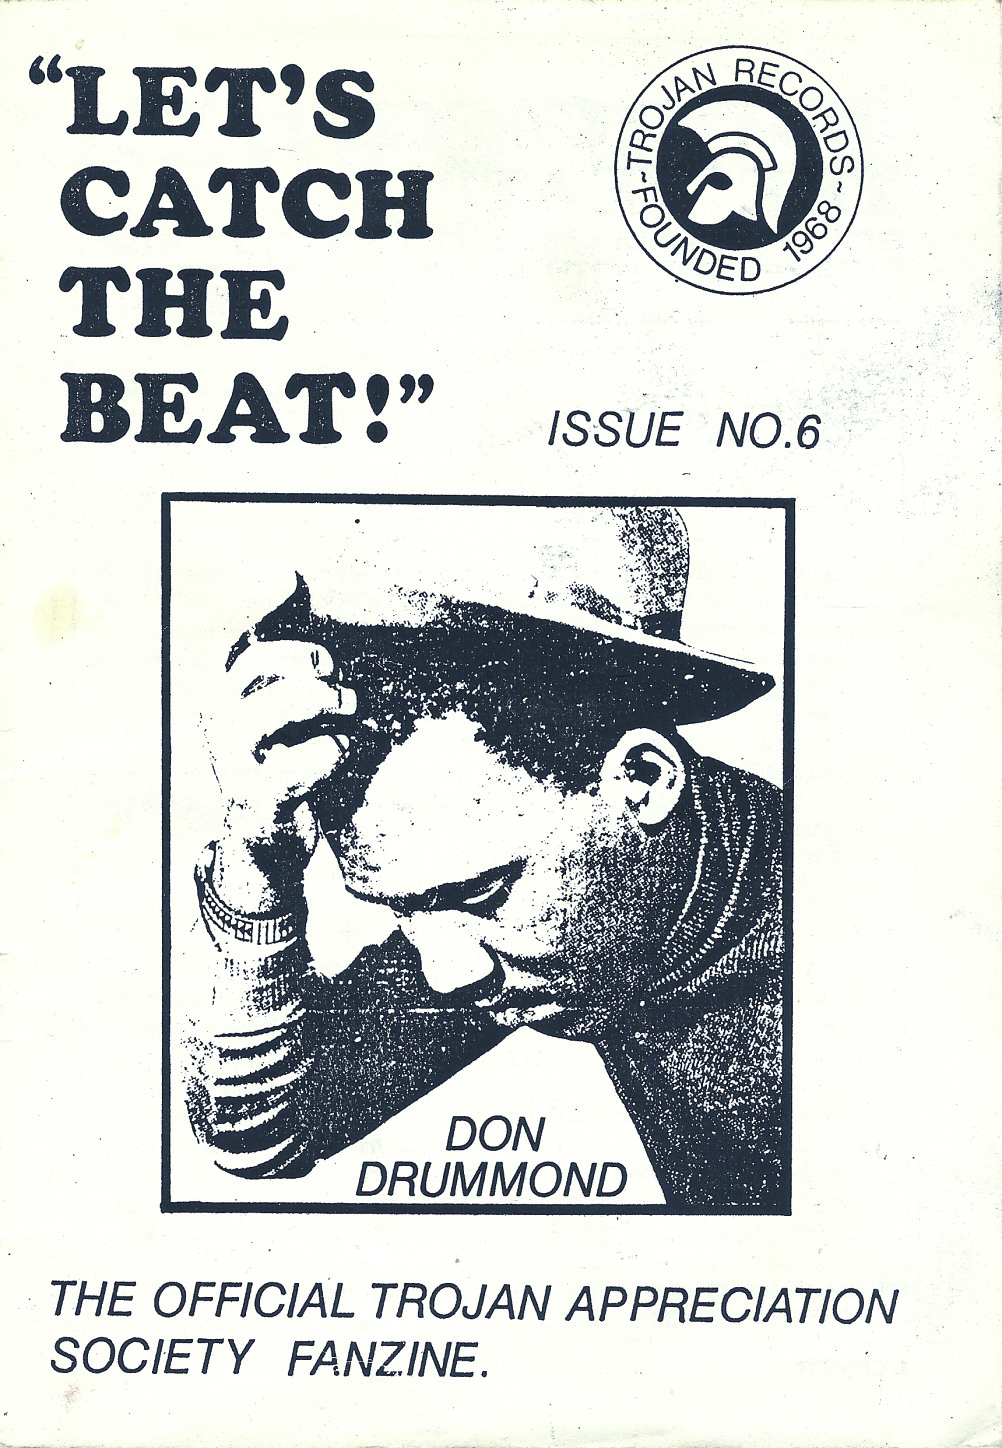 Let's Catch the Beat! fanzine